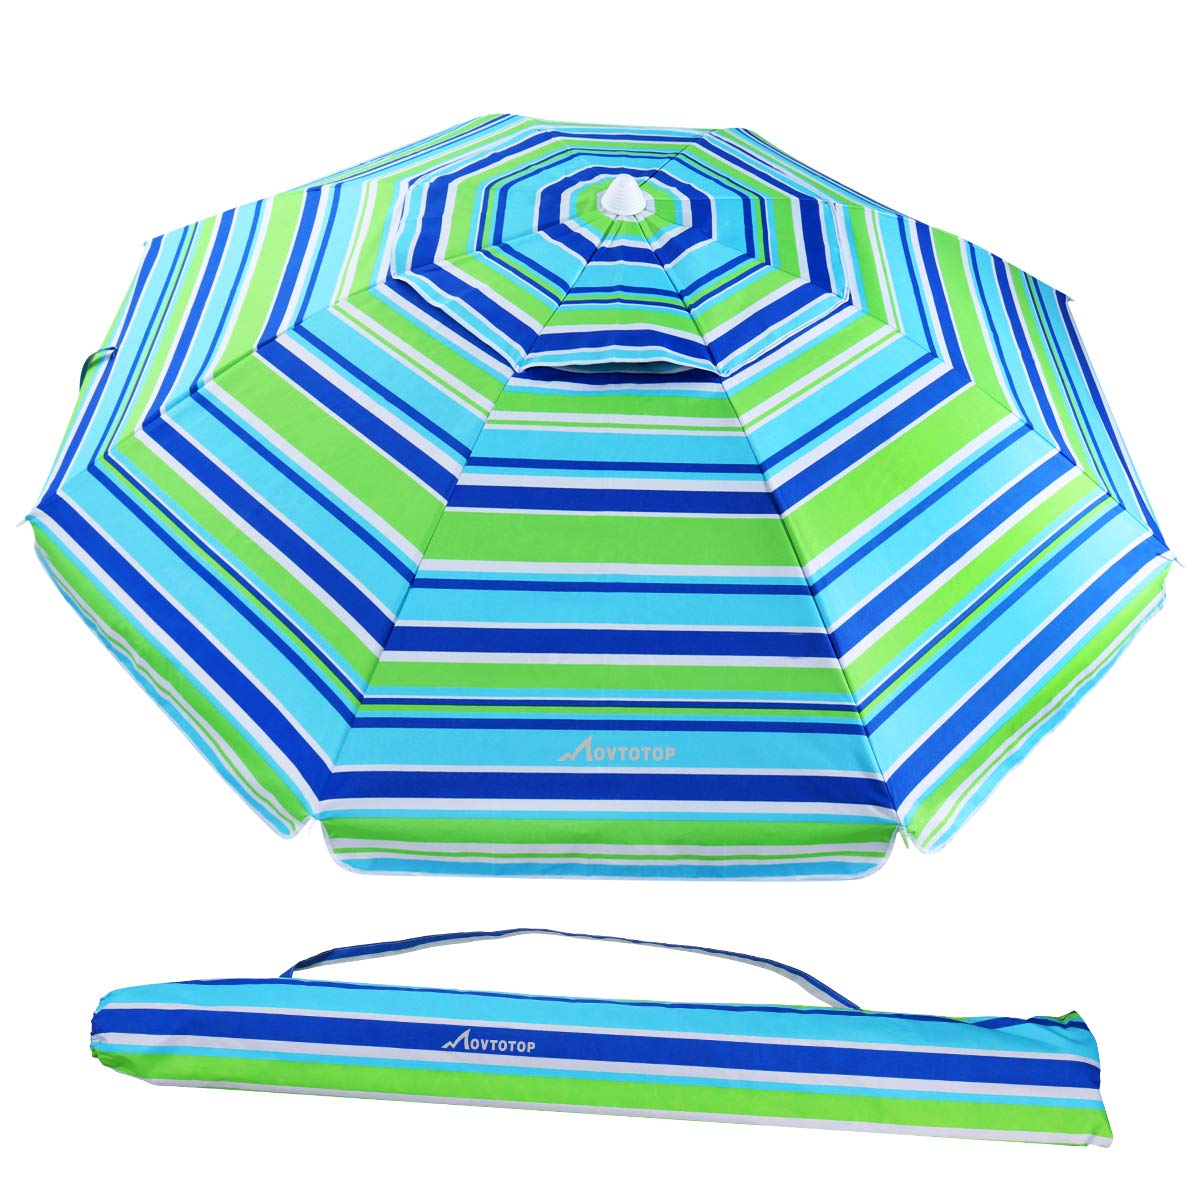 MOVTOTOP Beach Umbrella, 6.5ft Sand Anchor with Tilt Aluminum Pole, Portable UV 50+ Protection Beach Umbrella with Carry Bag for Outdoor Patio, Blue/Green by MOVTOTOP